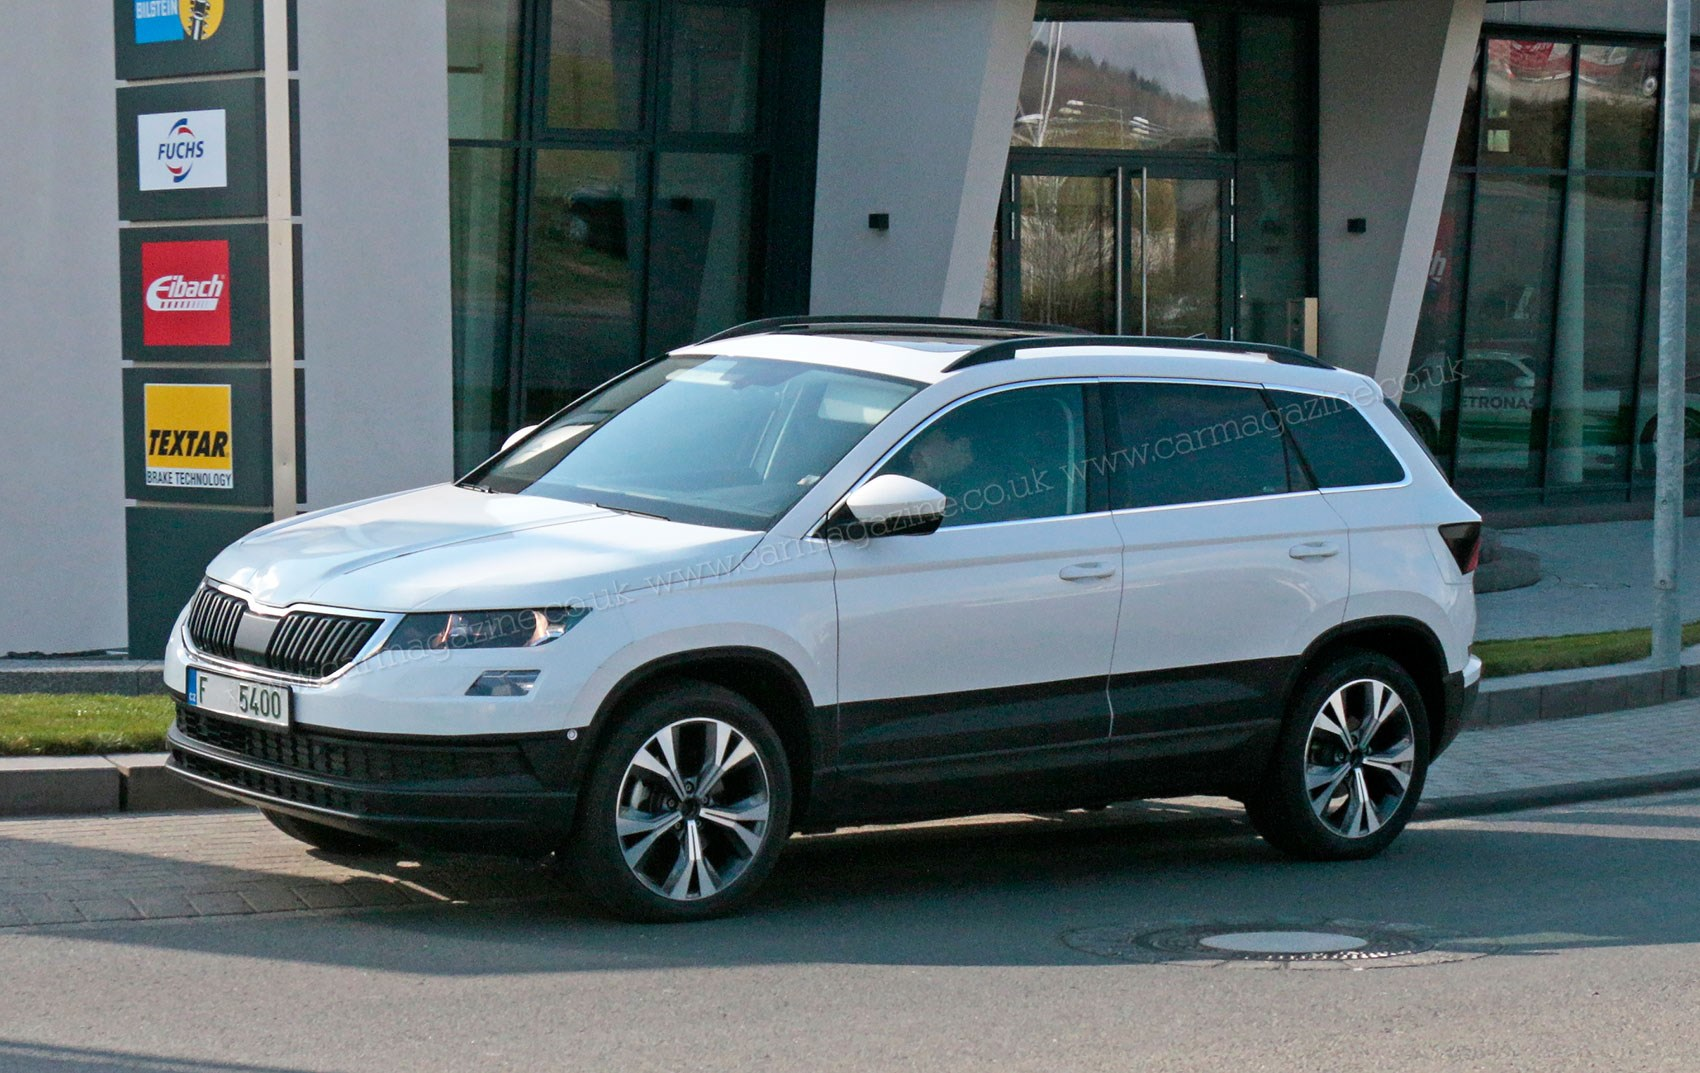 Skoda Karoq Mini Suv Revealed Spy Photos on infiniti jeep